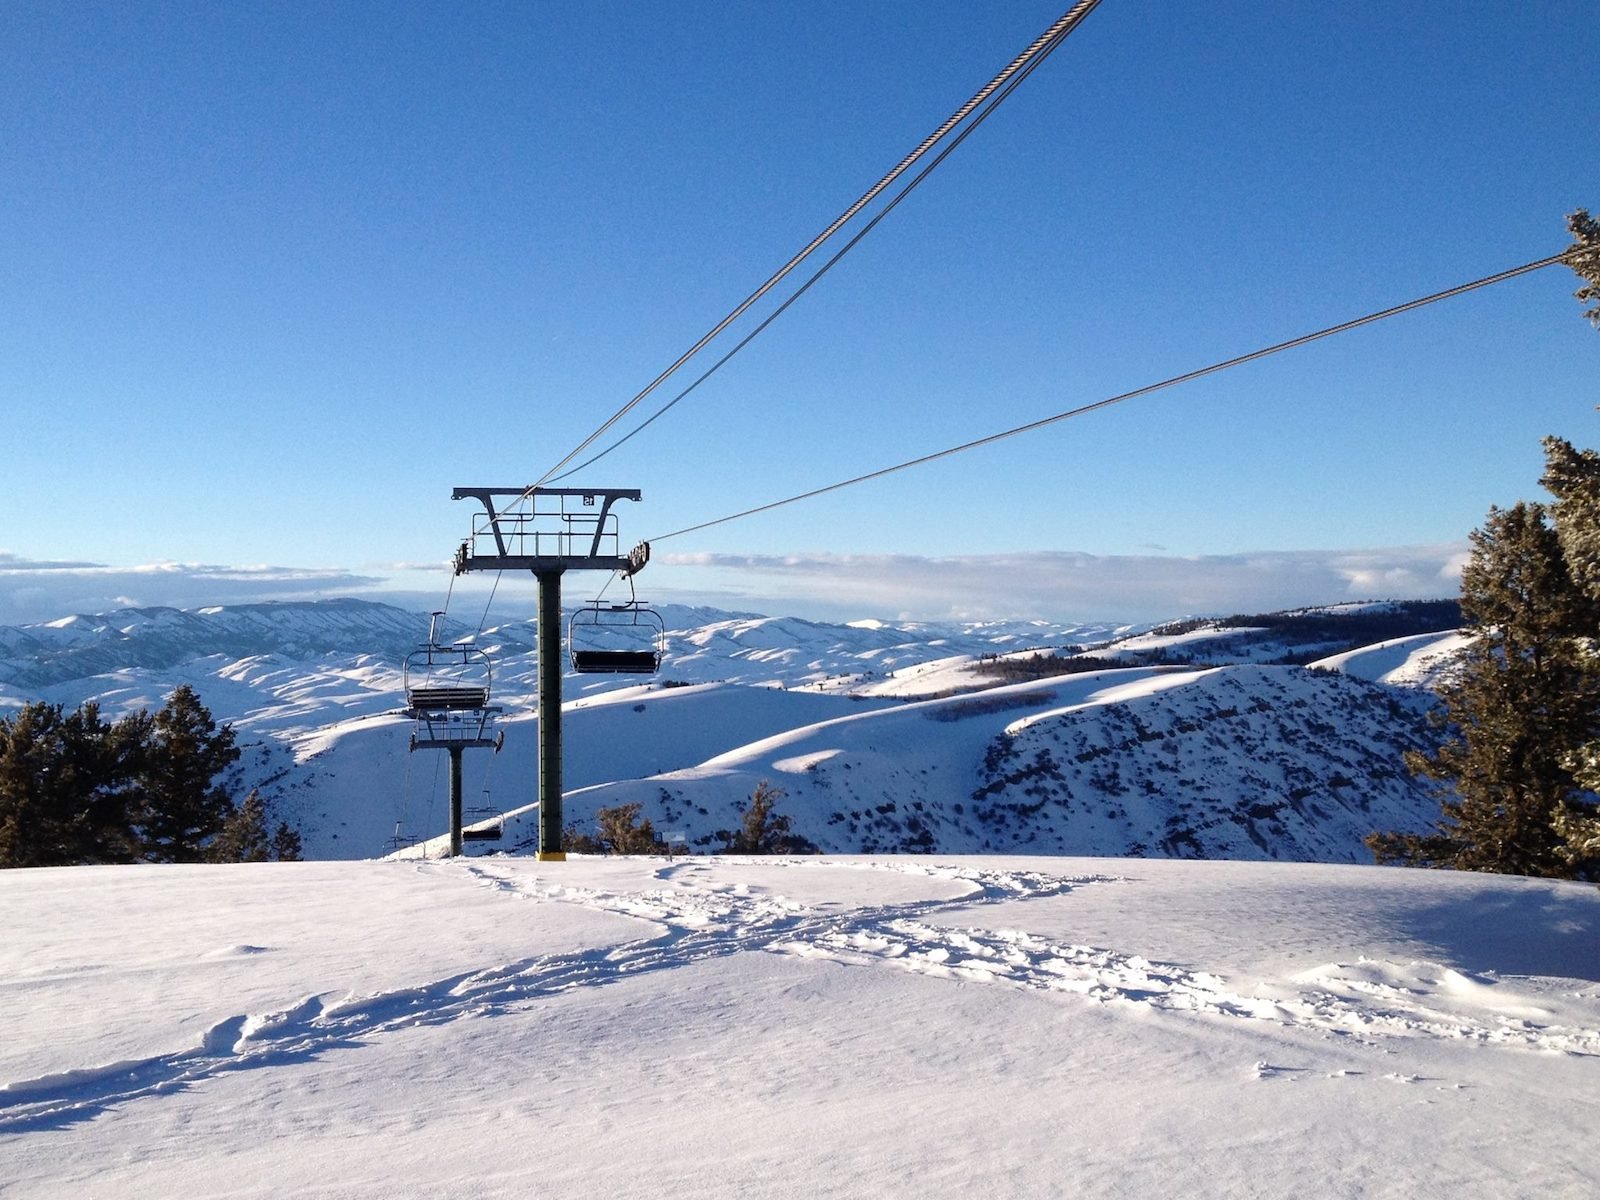 Image of chair lifts at Pine Creek Ski Resort in Wyoming surrounded by scenic views